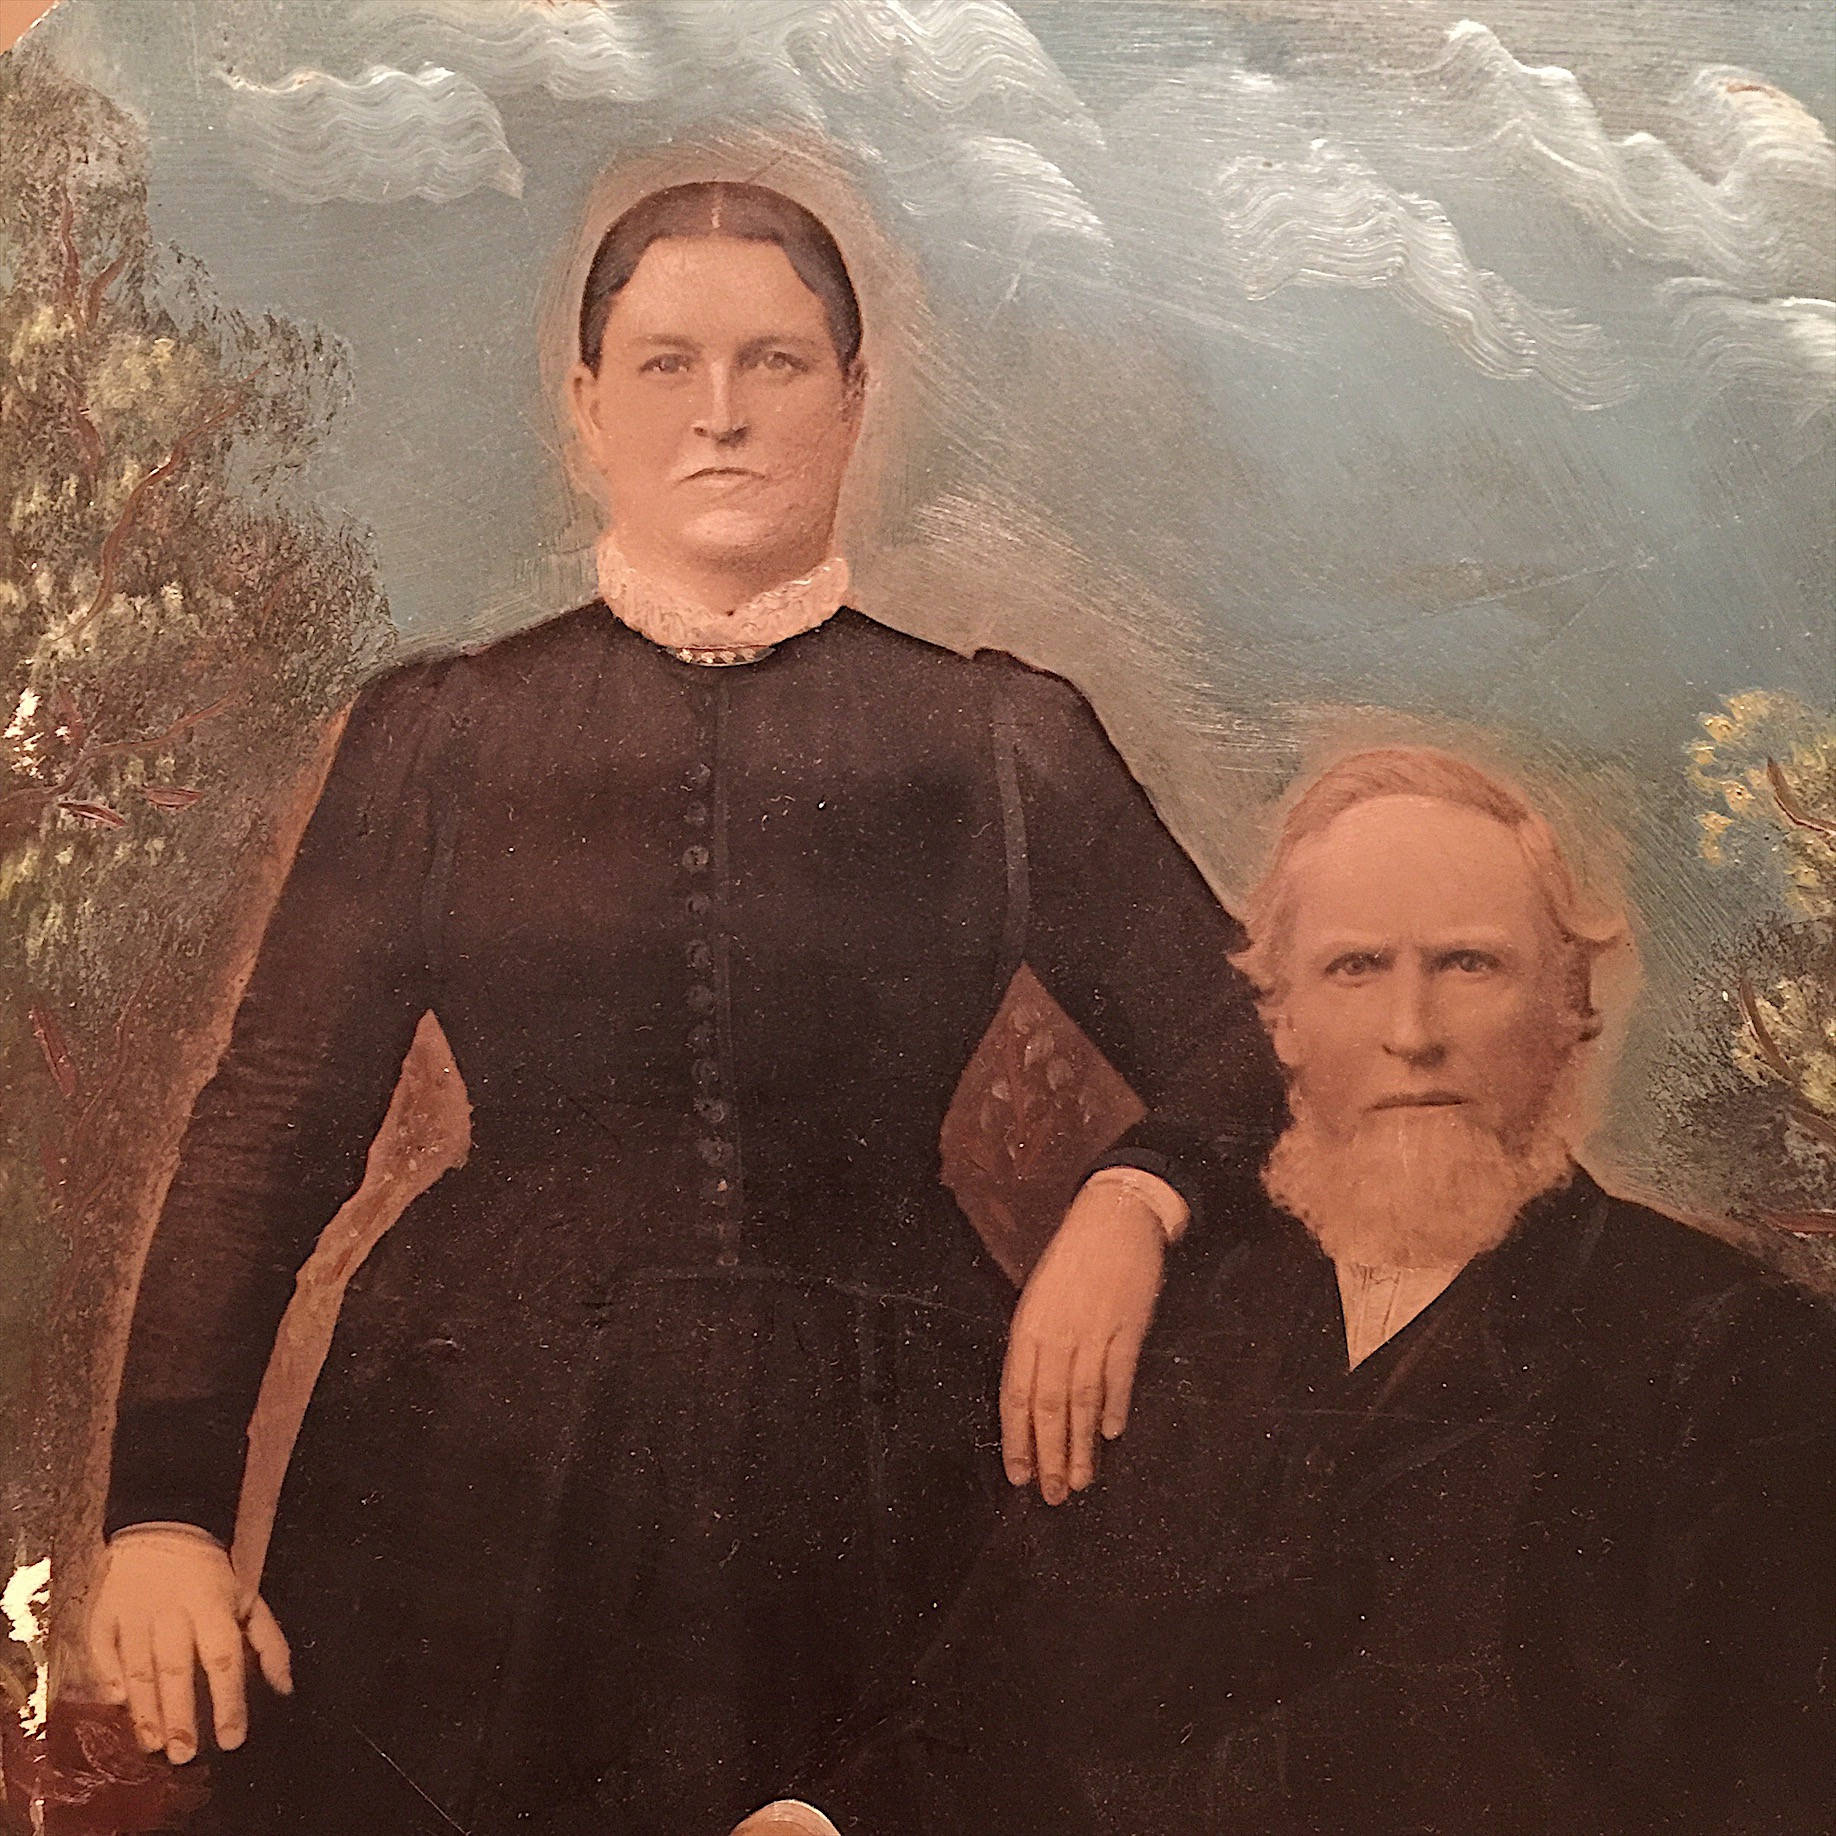 "Large Tintype of Creepy Couple - Hand Painted - Full Plate - 10"" x 7"" - Vintage Photography - Antique Daguerreotype - Creepy Wall Decor"